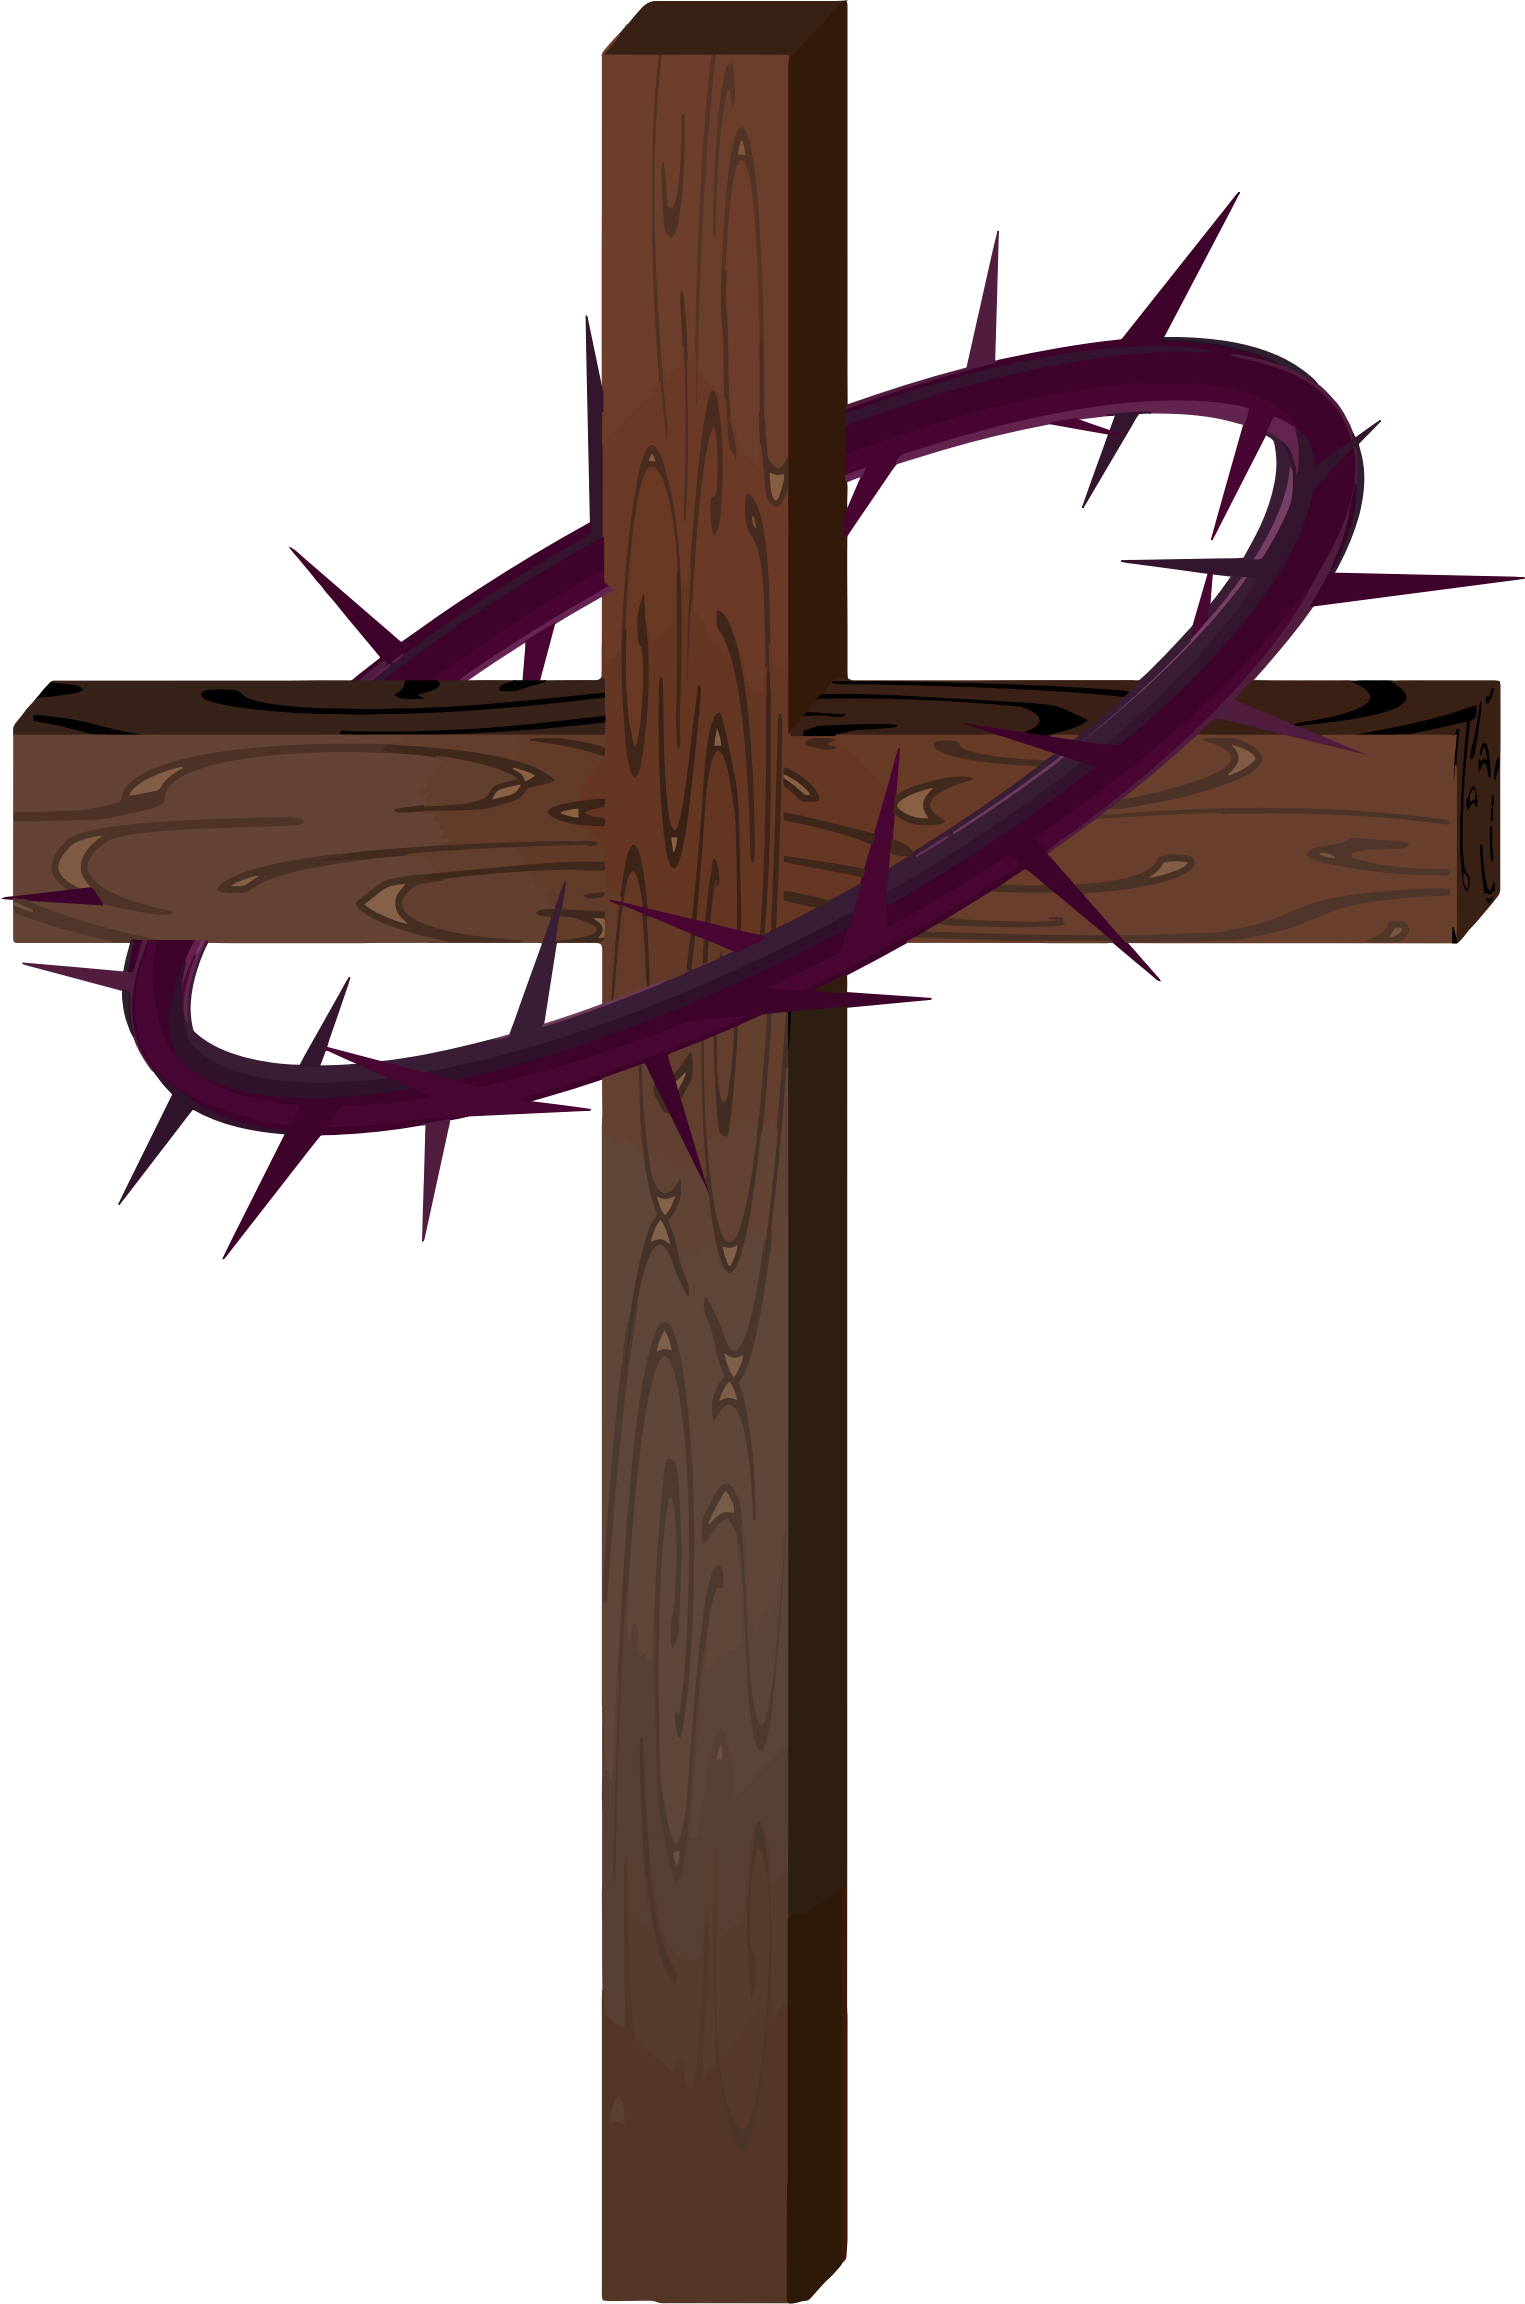 Catholic clipart of the crown of thorns and cross graphic free download Clipart - Cross With Crown Of Thorns graphic free download